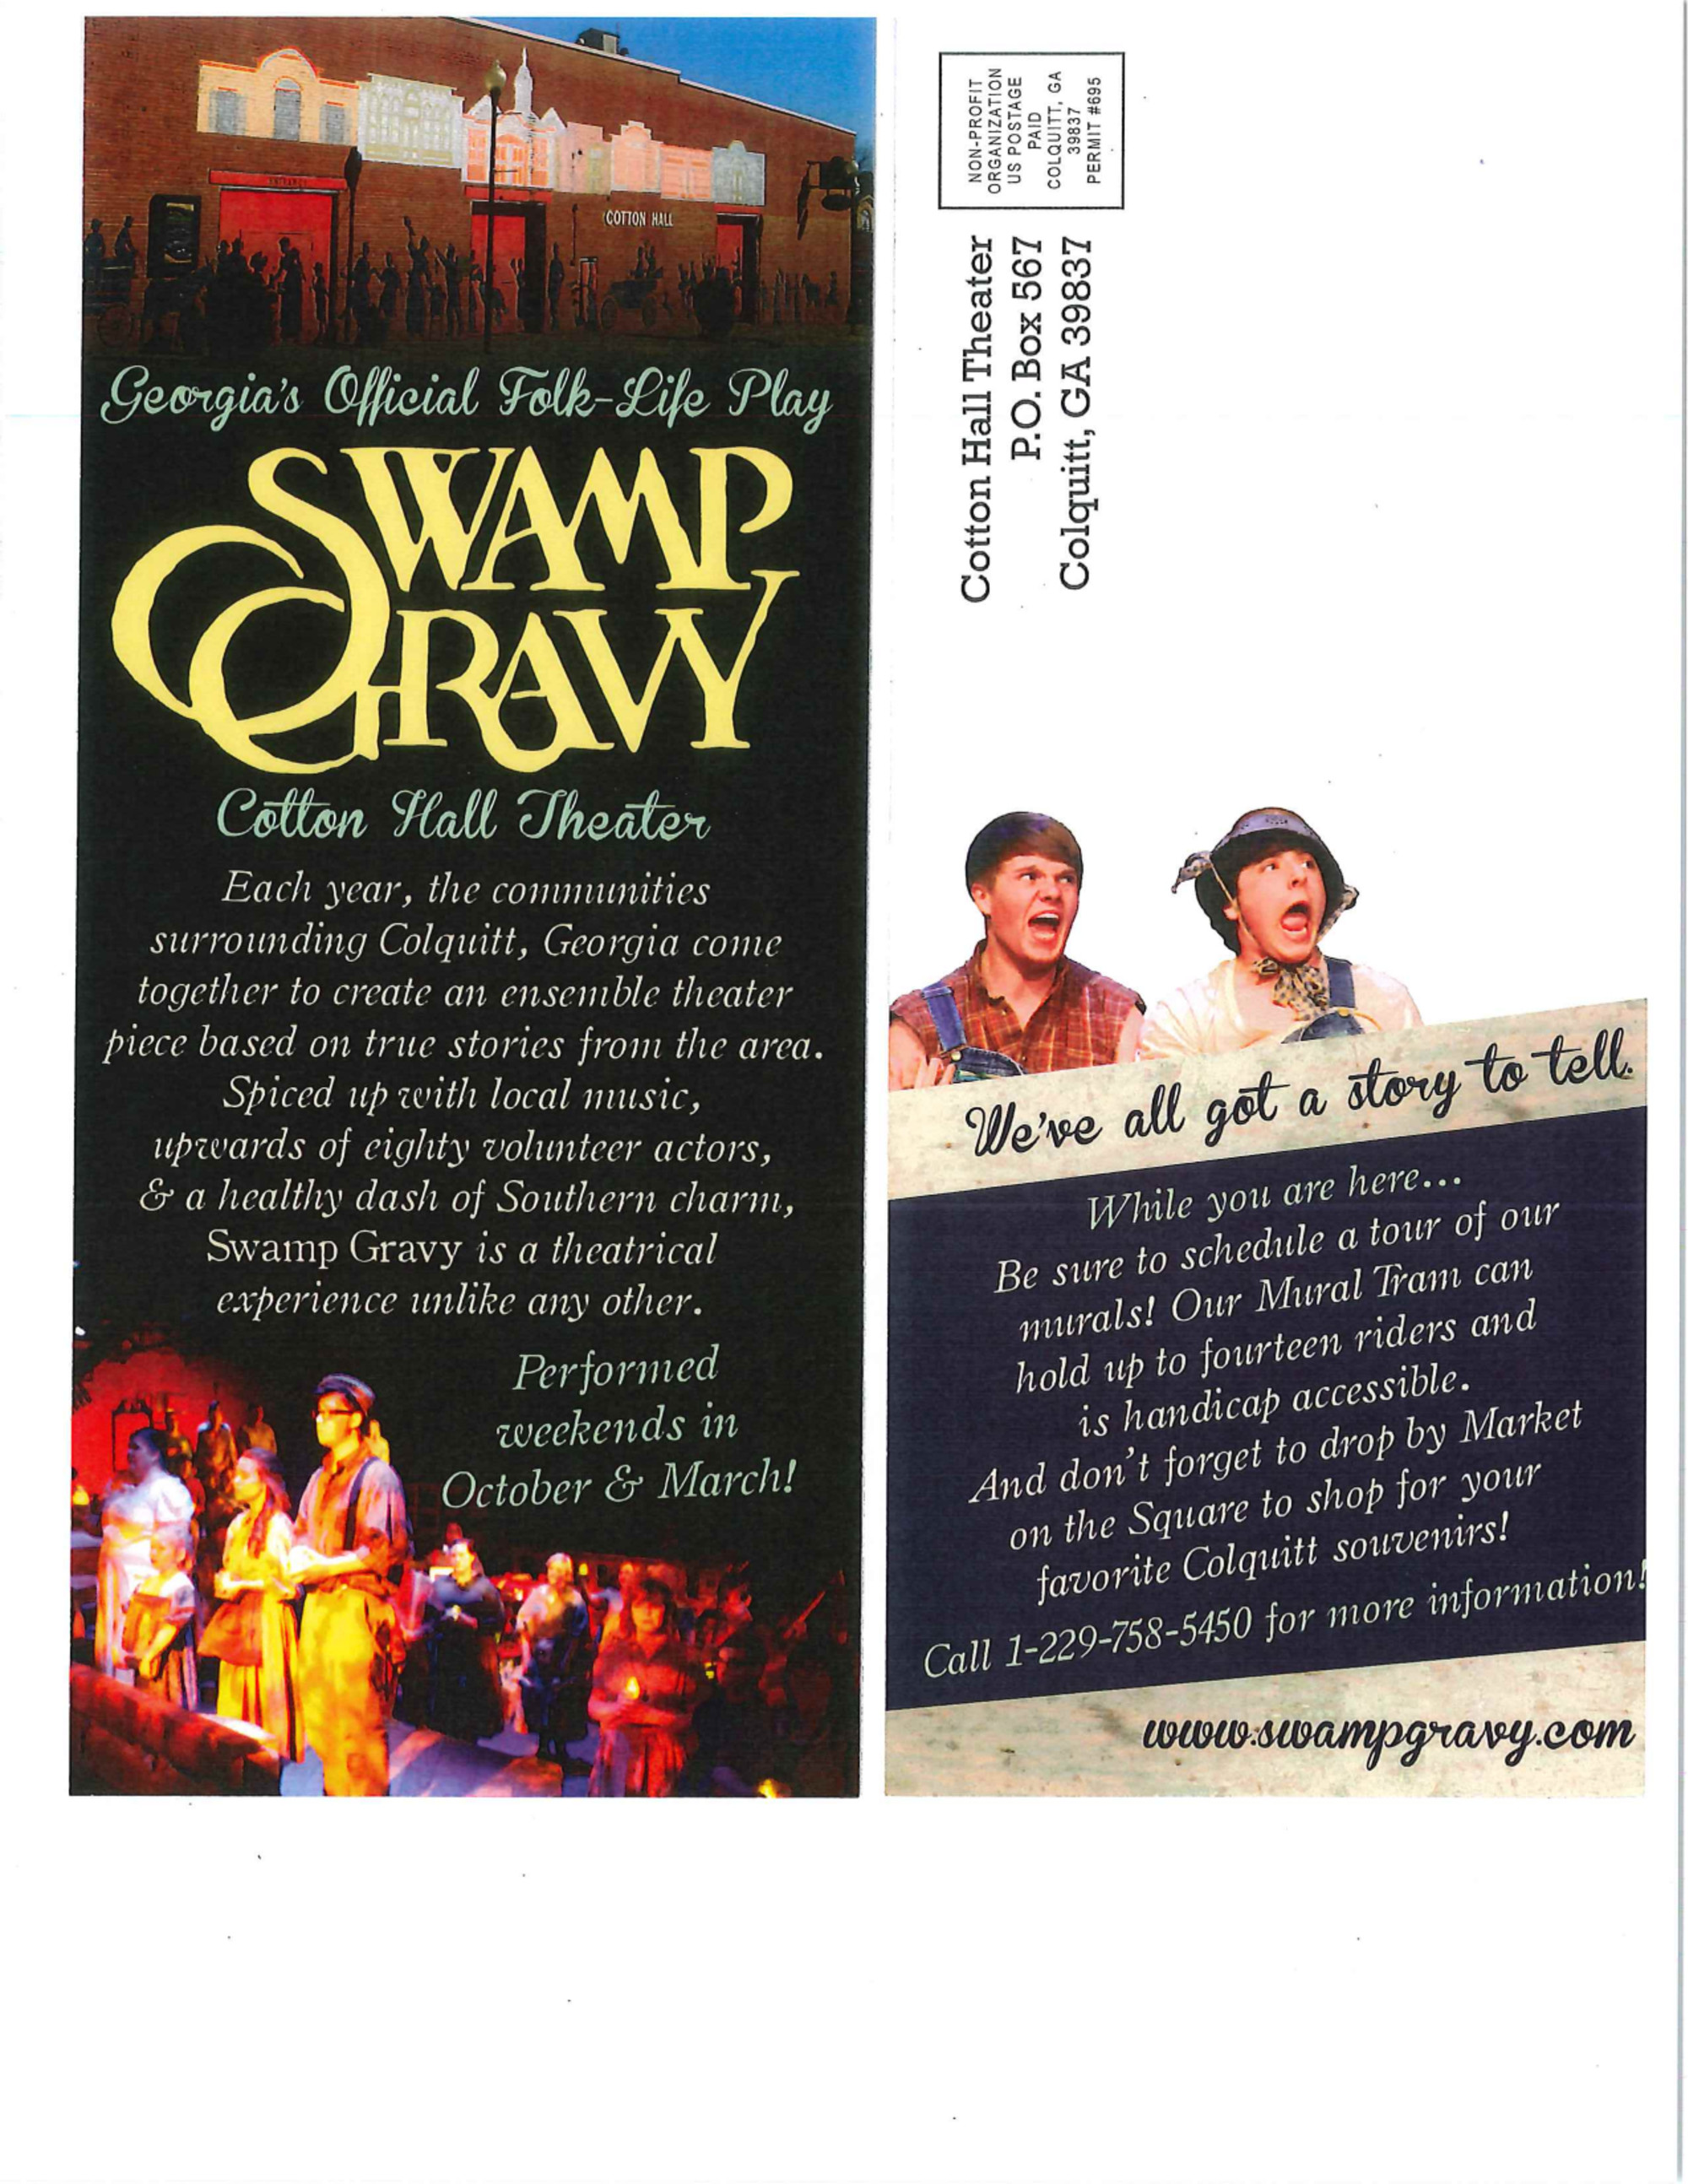 Swamp Gravy, Georgia's Official Folk Life Play